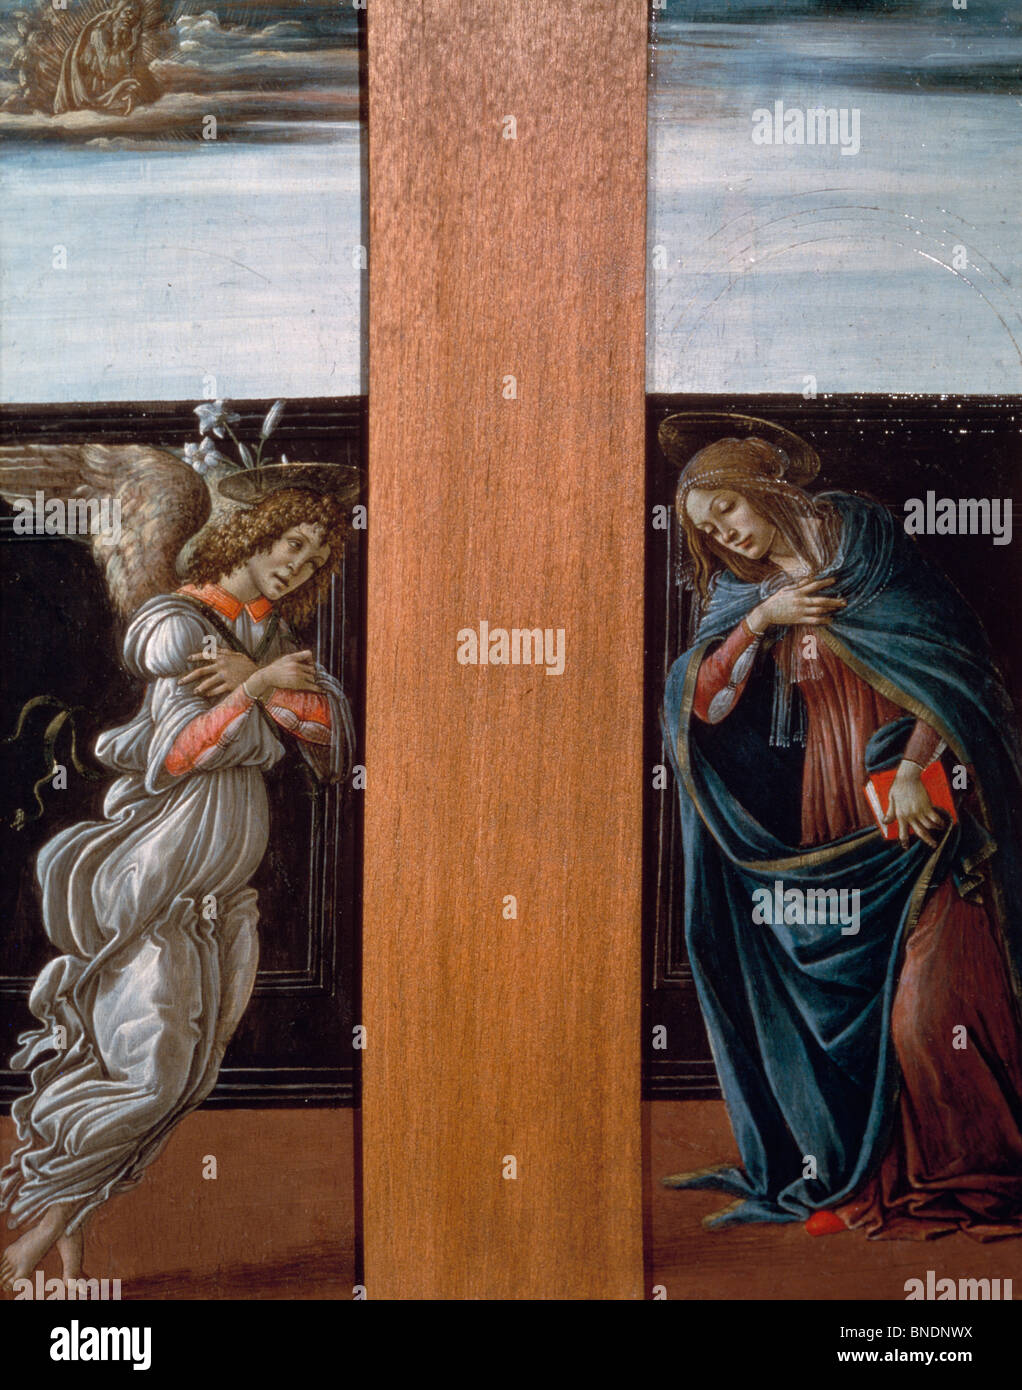 The Annunciation by Sandro Boticelli, tempera/wood panel, 1495, 1444-1510, Russia, Moscow, Pushkin Museum of Fine - Stock Image